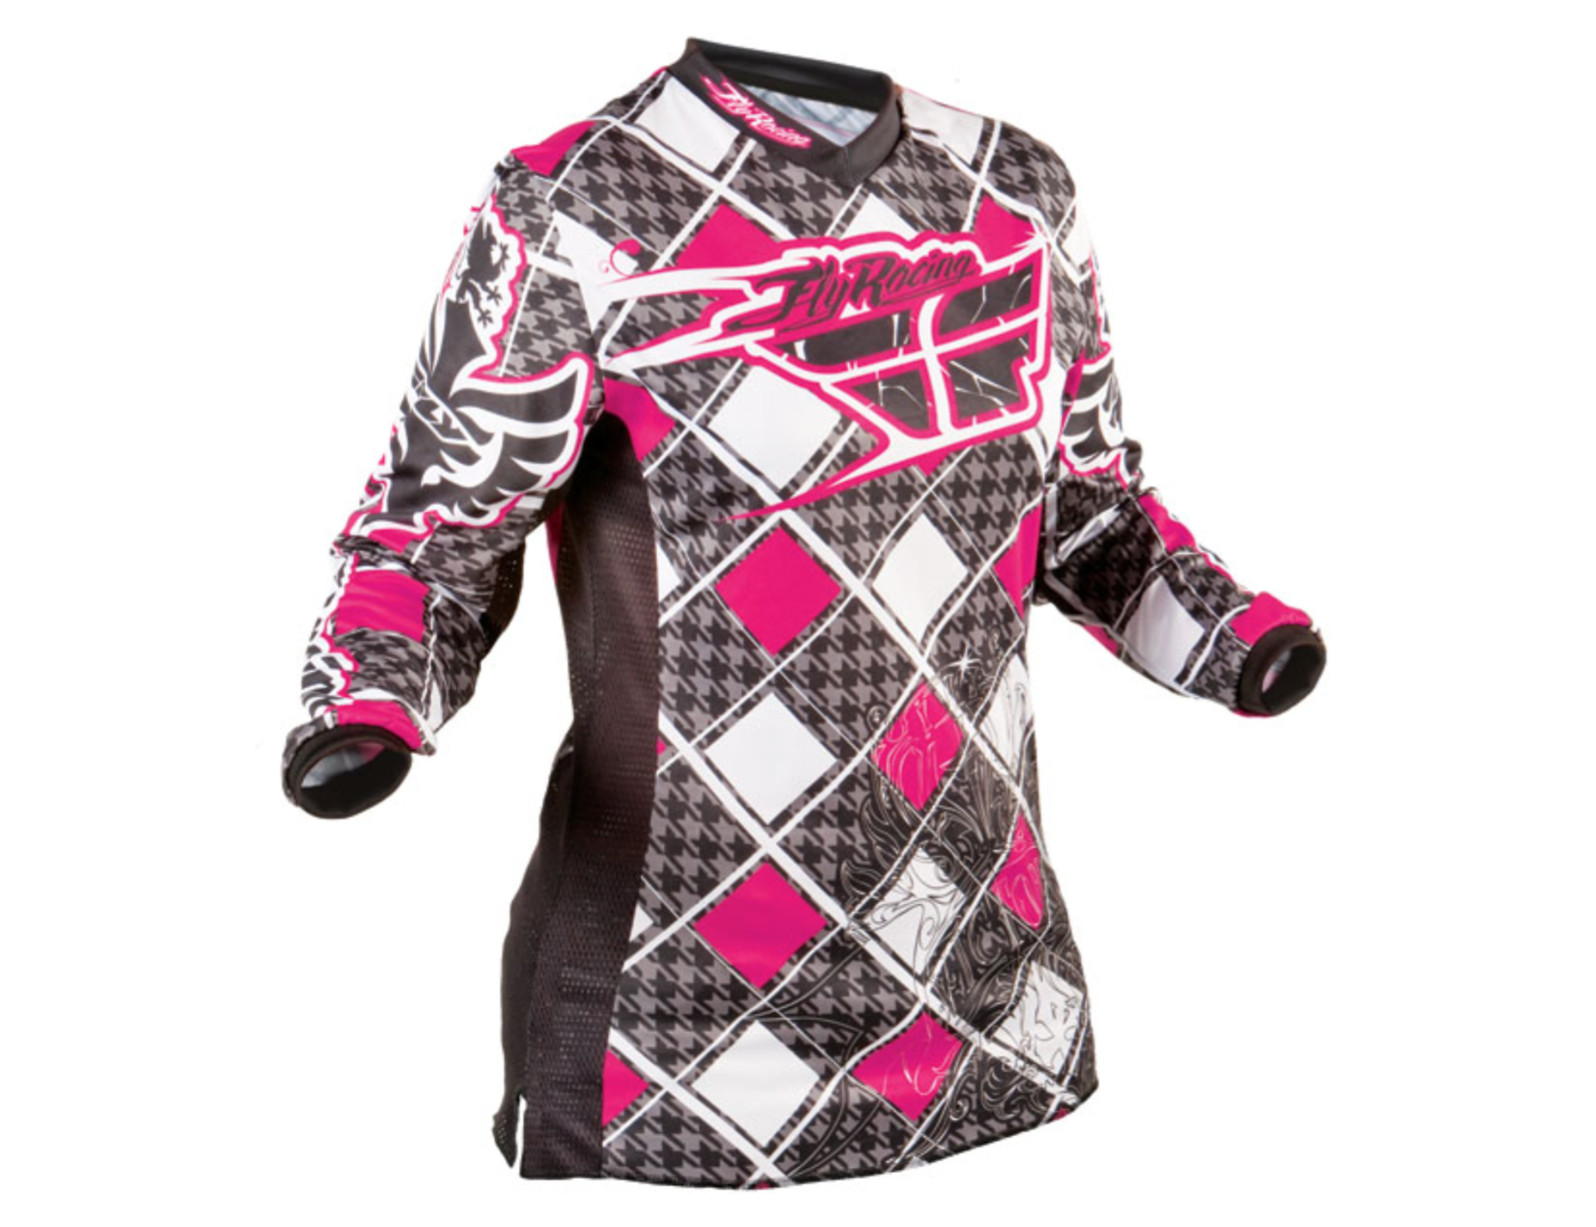 2010 Fly Racing Kinetic Girls Jersey (pink)